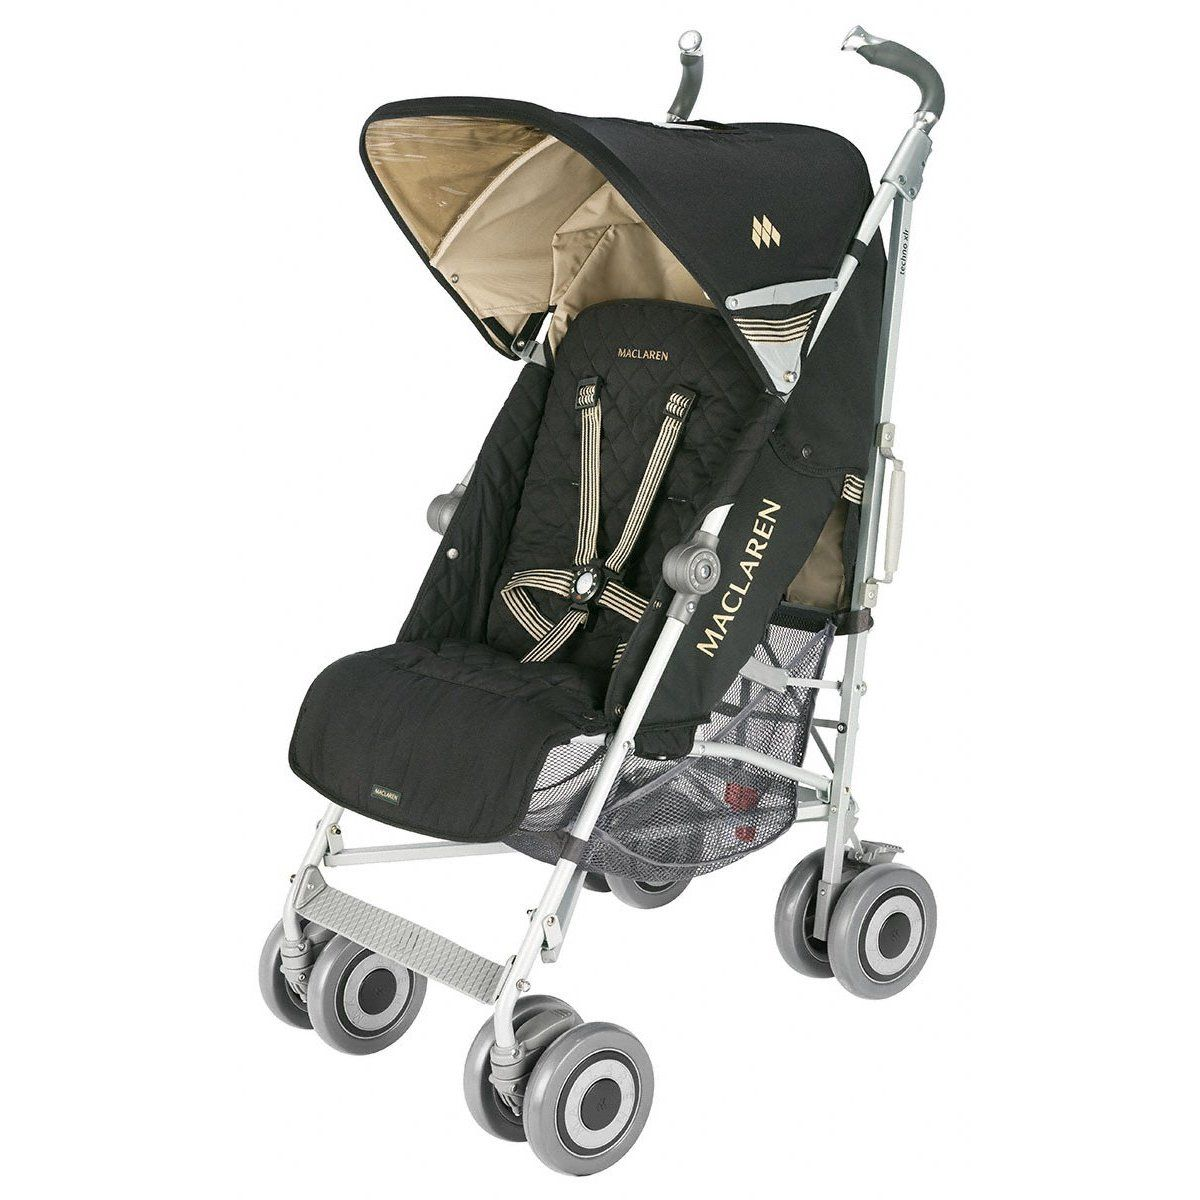 Maclaren XLR (With images) | Stroller, Baby strollers ...